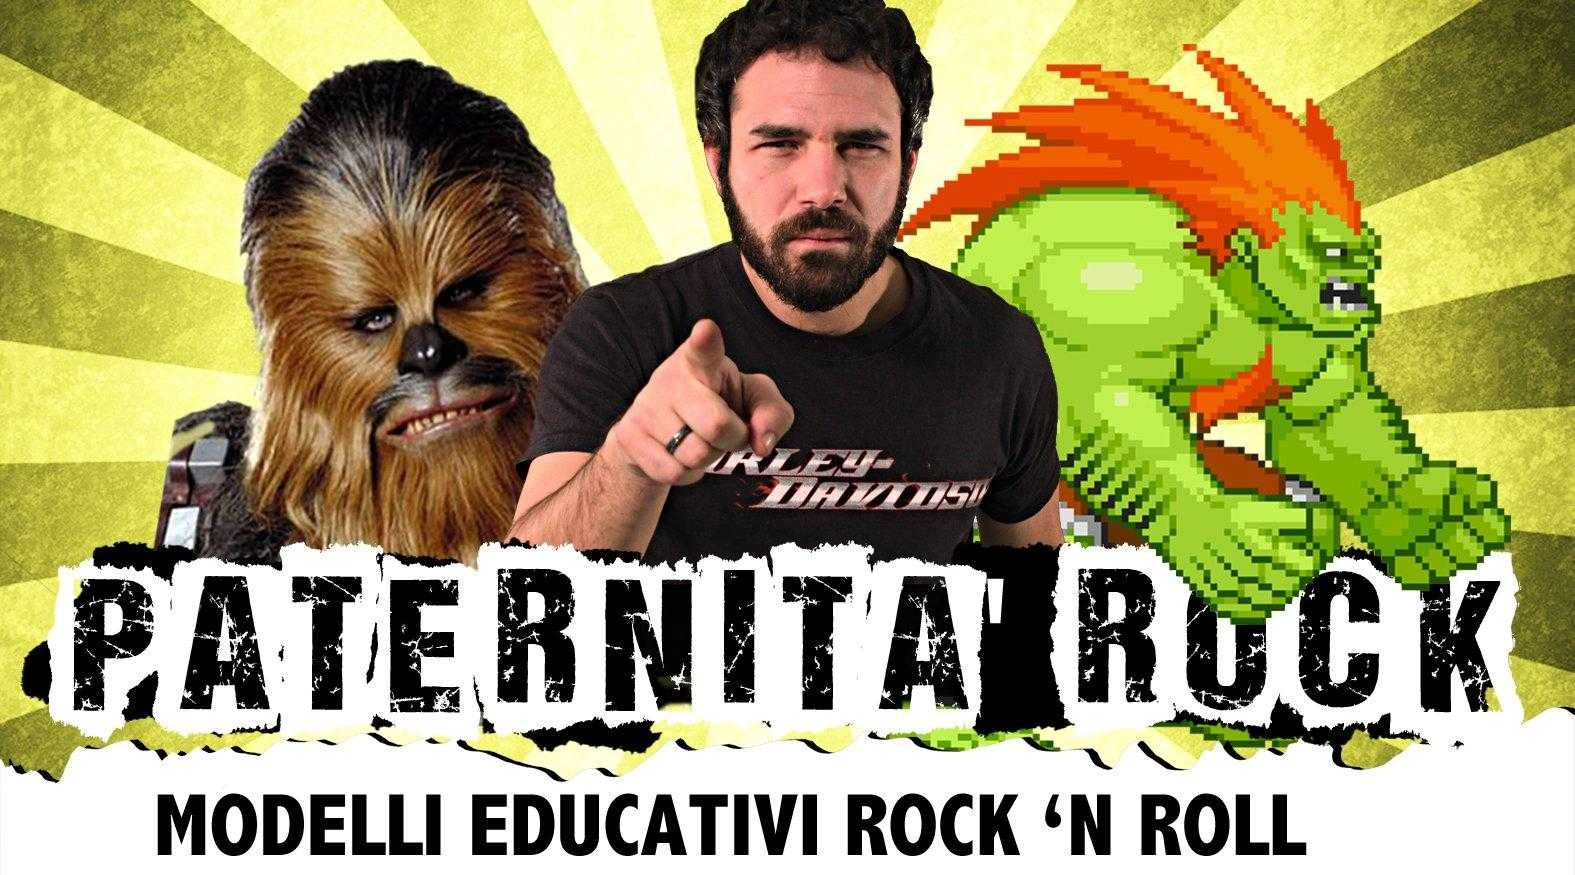 Paternità e musica, modelli educativi rock 'n' roll